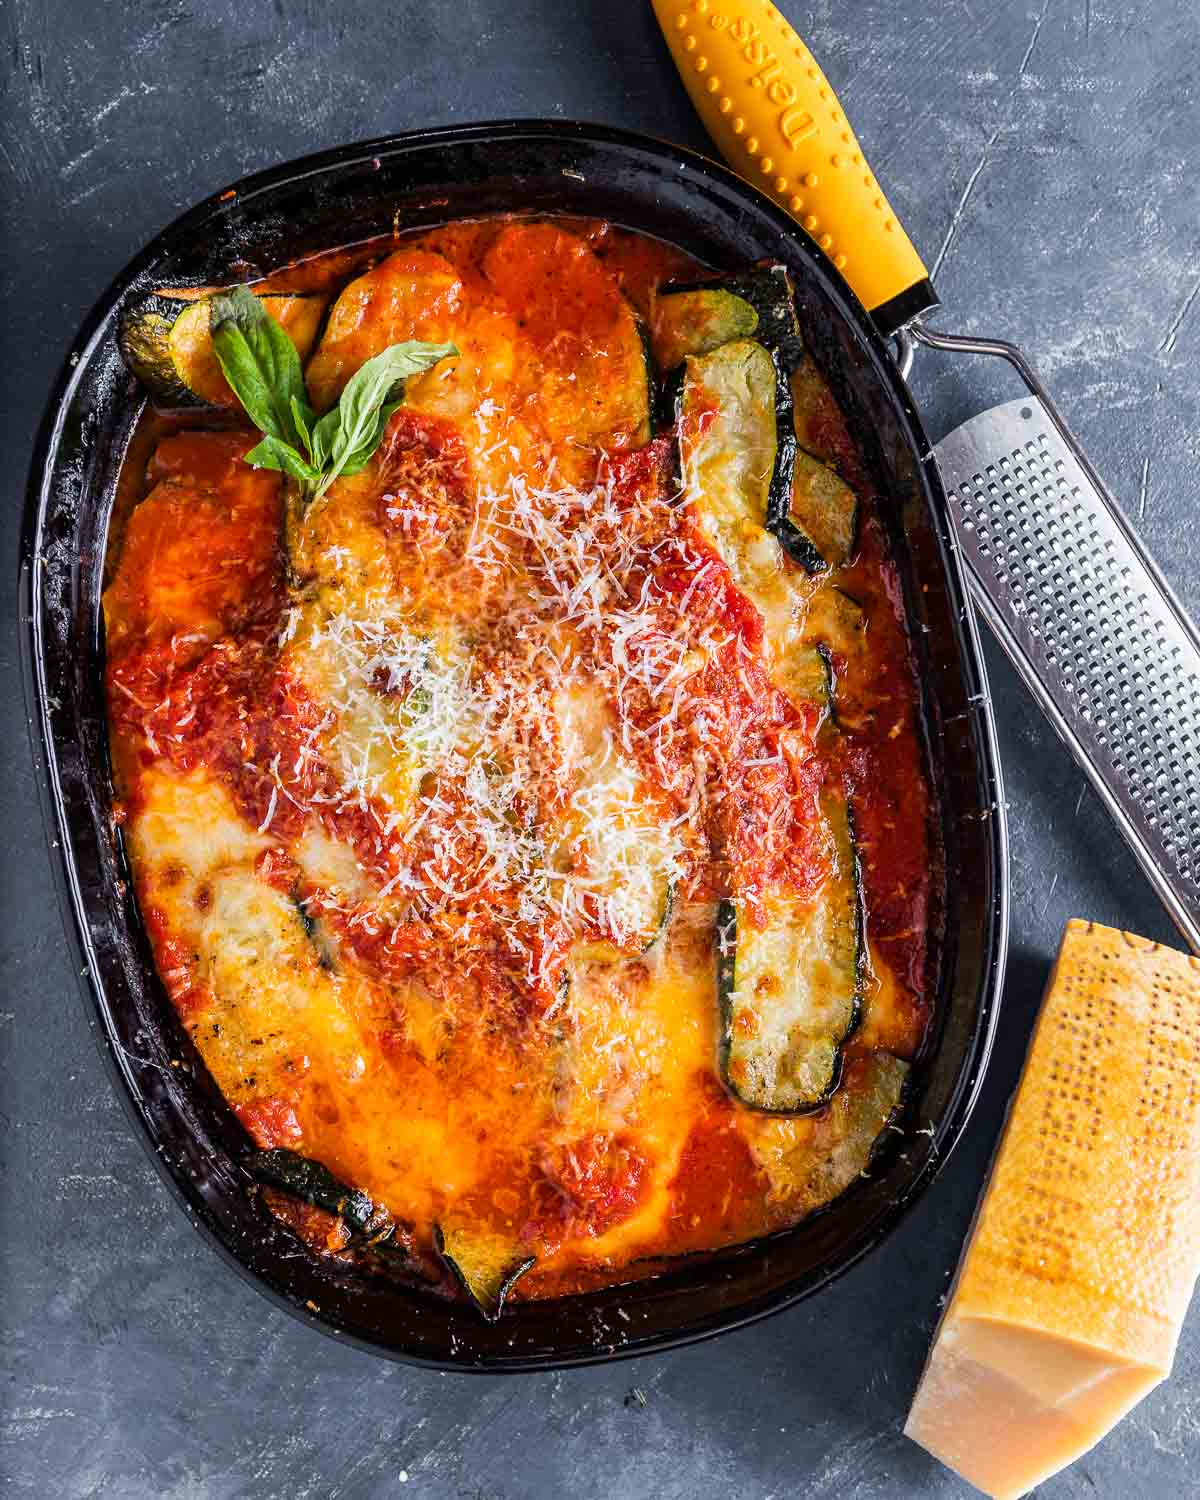 Overhead shot of baked zucchini parm in baking dish with block of Parmigiano Reggiano cheese on the side.